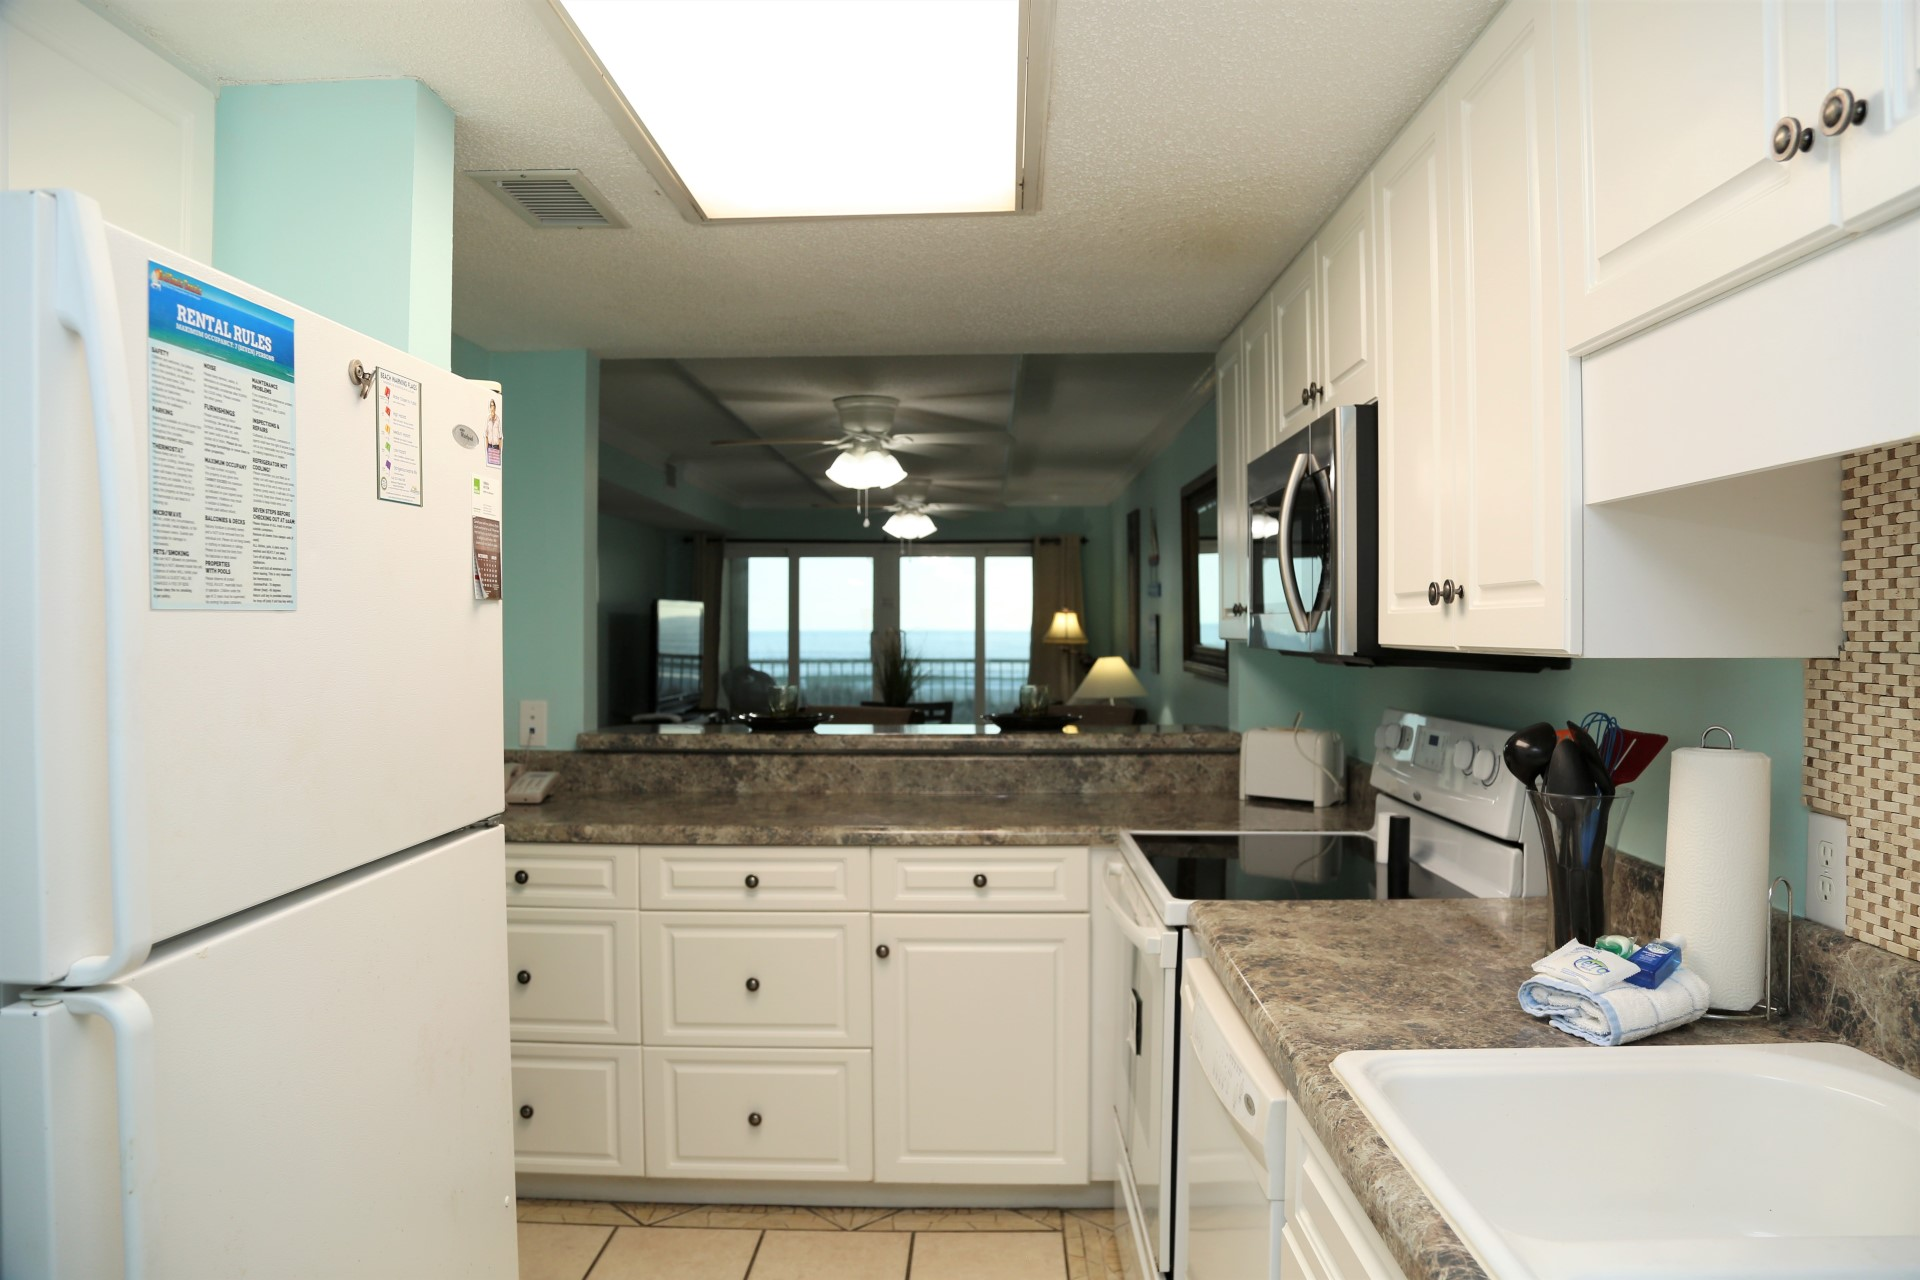 Castaways 1B - Fully equipped kitchen